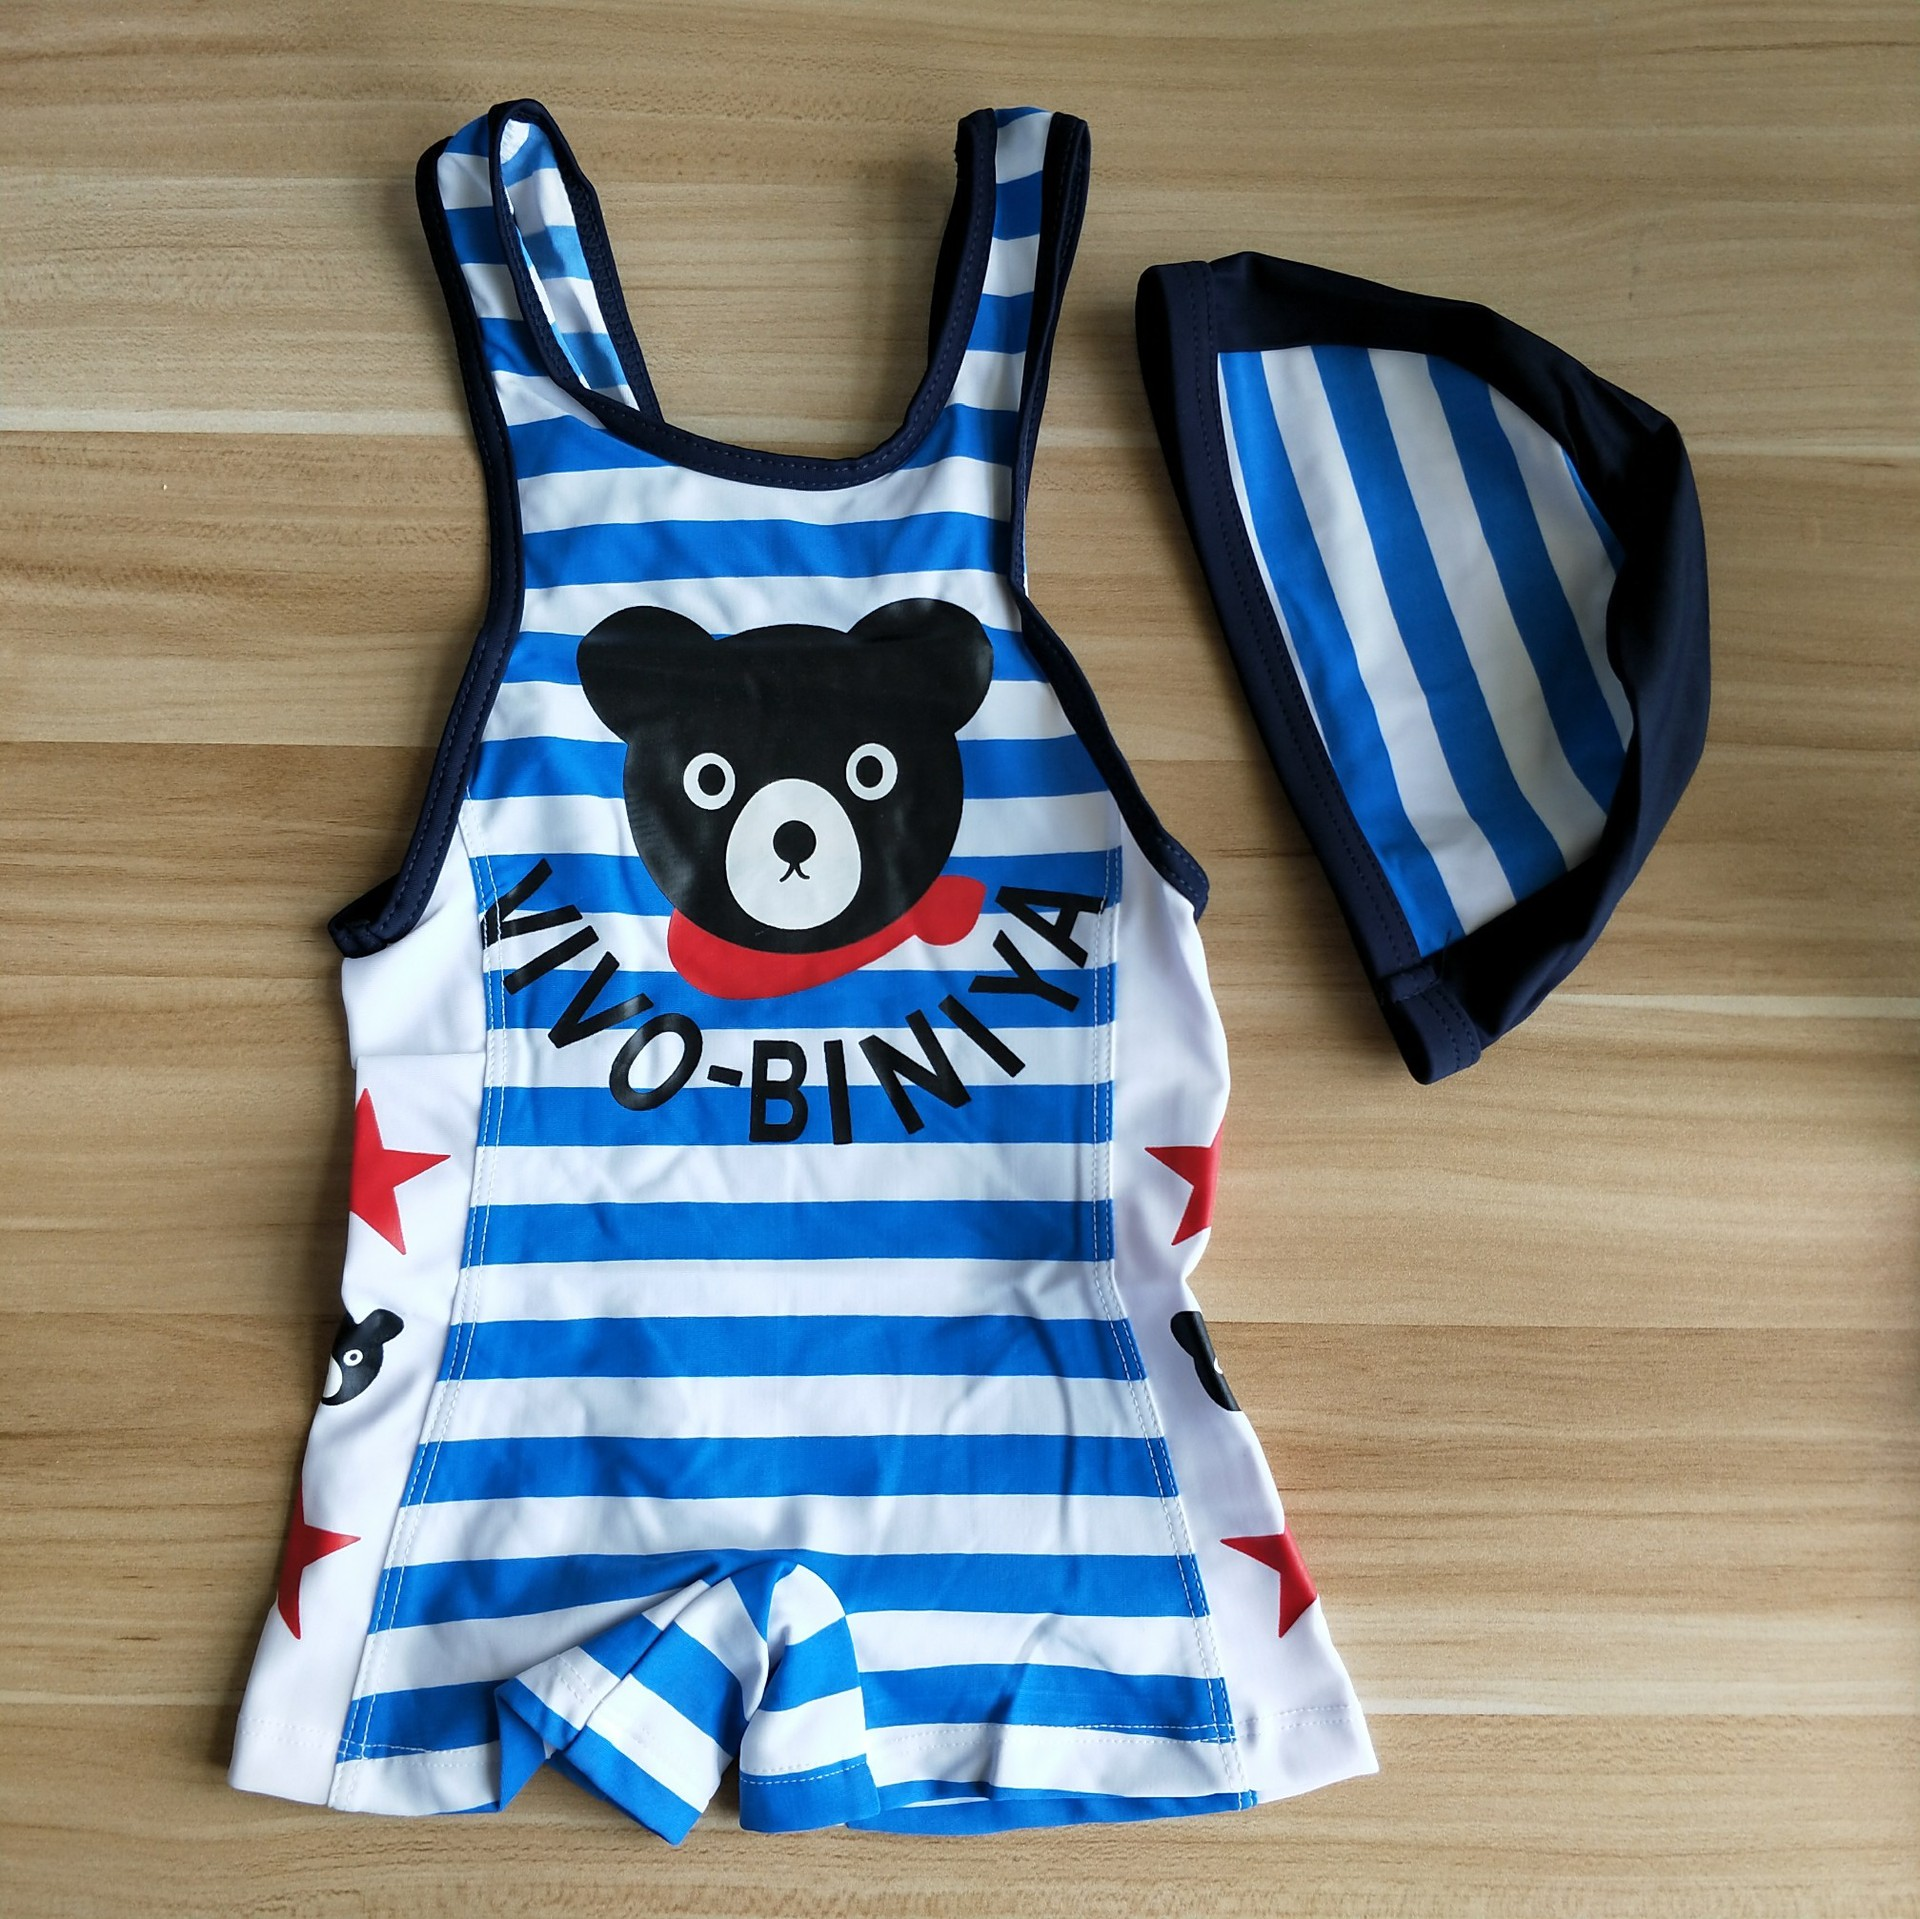 CHILDREN'S Swimwear Bear Stripes BOY'S One-piece Set New Style Boy Baby Sun-resistant Swimwear